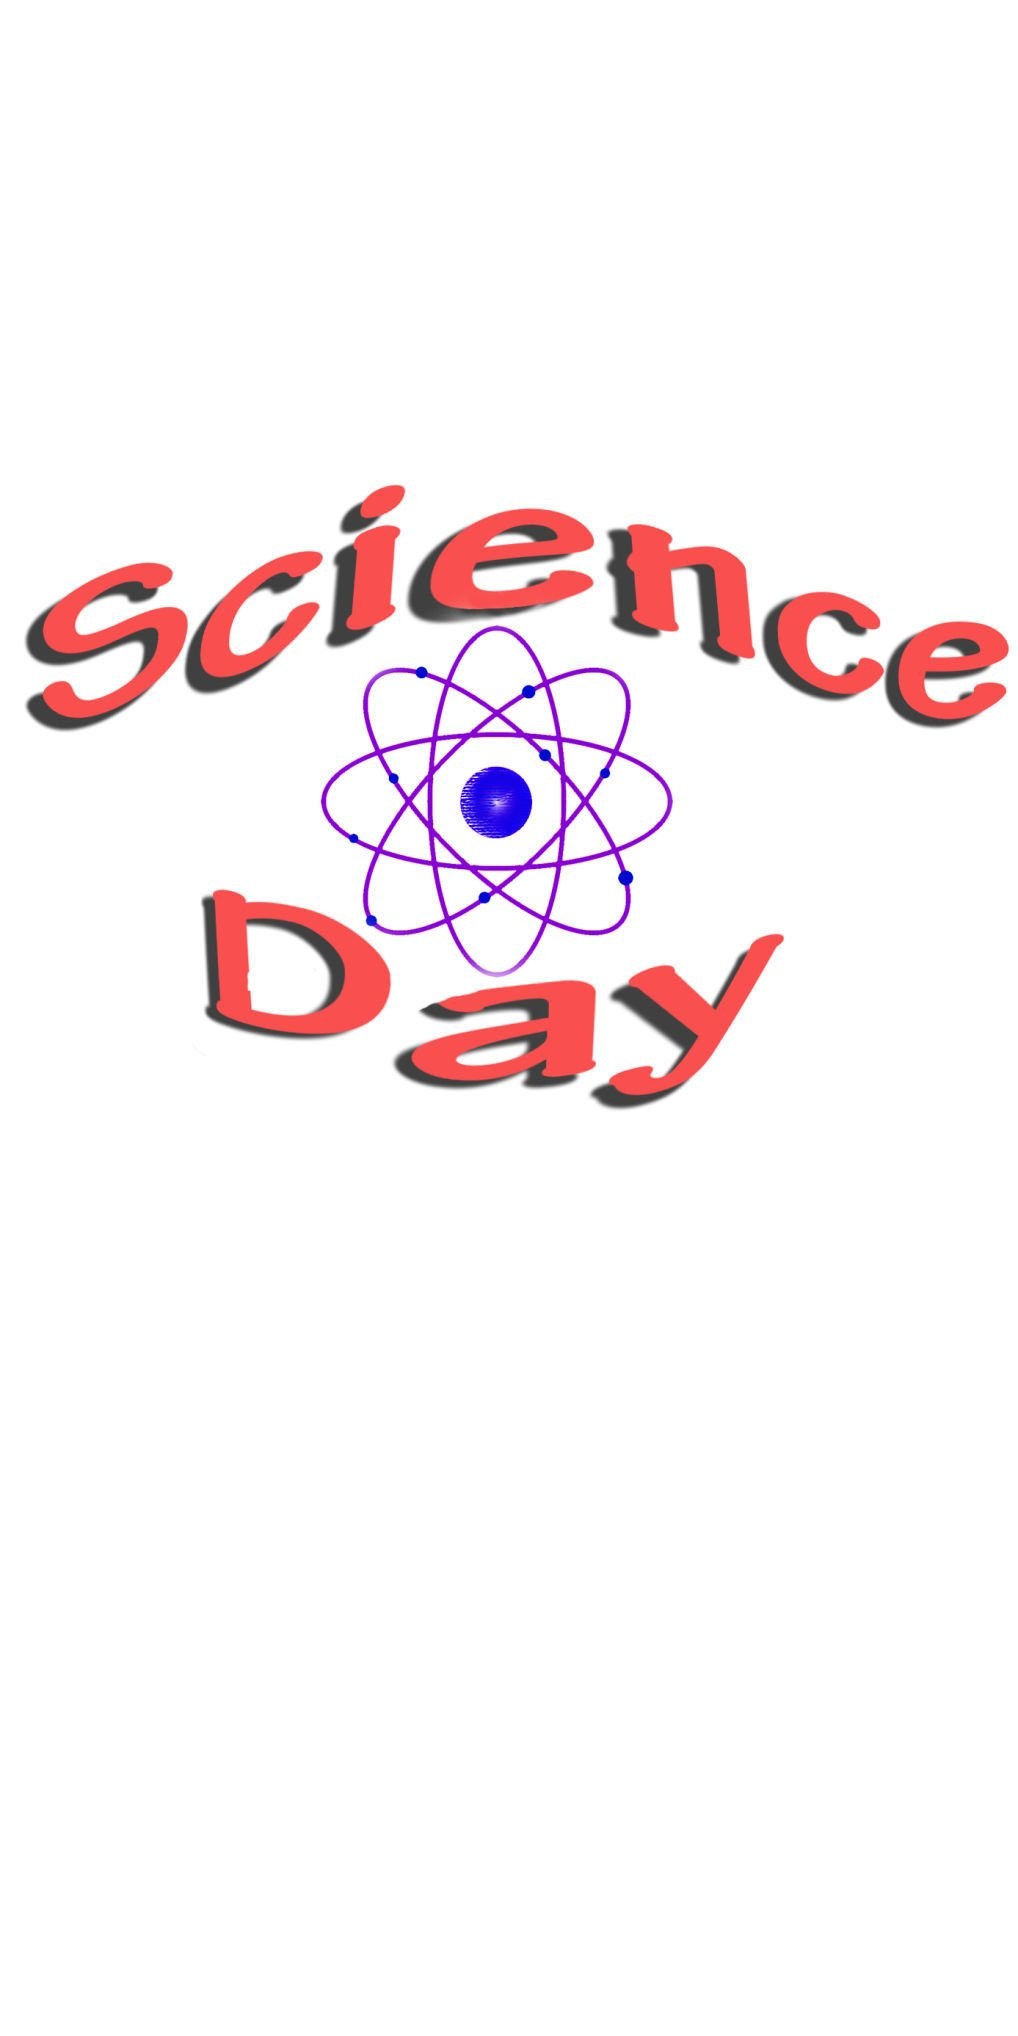 ScienceDayTitle copy.jpg